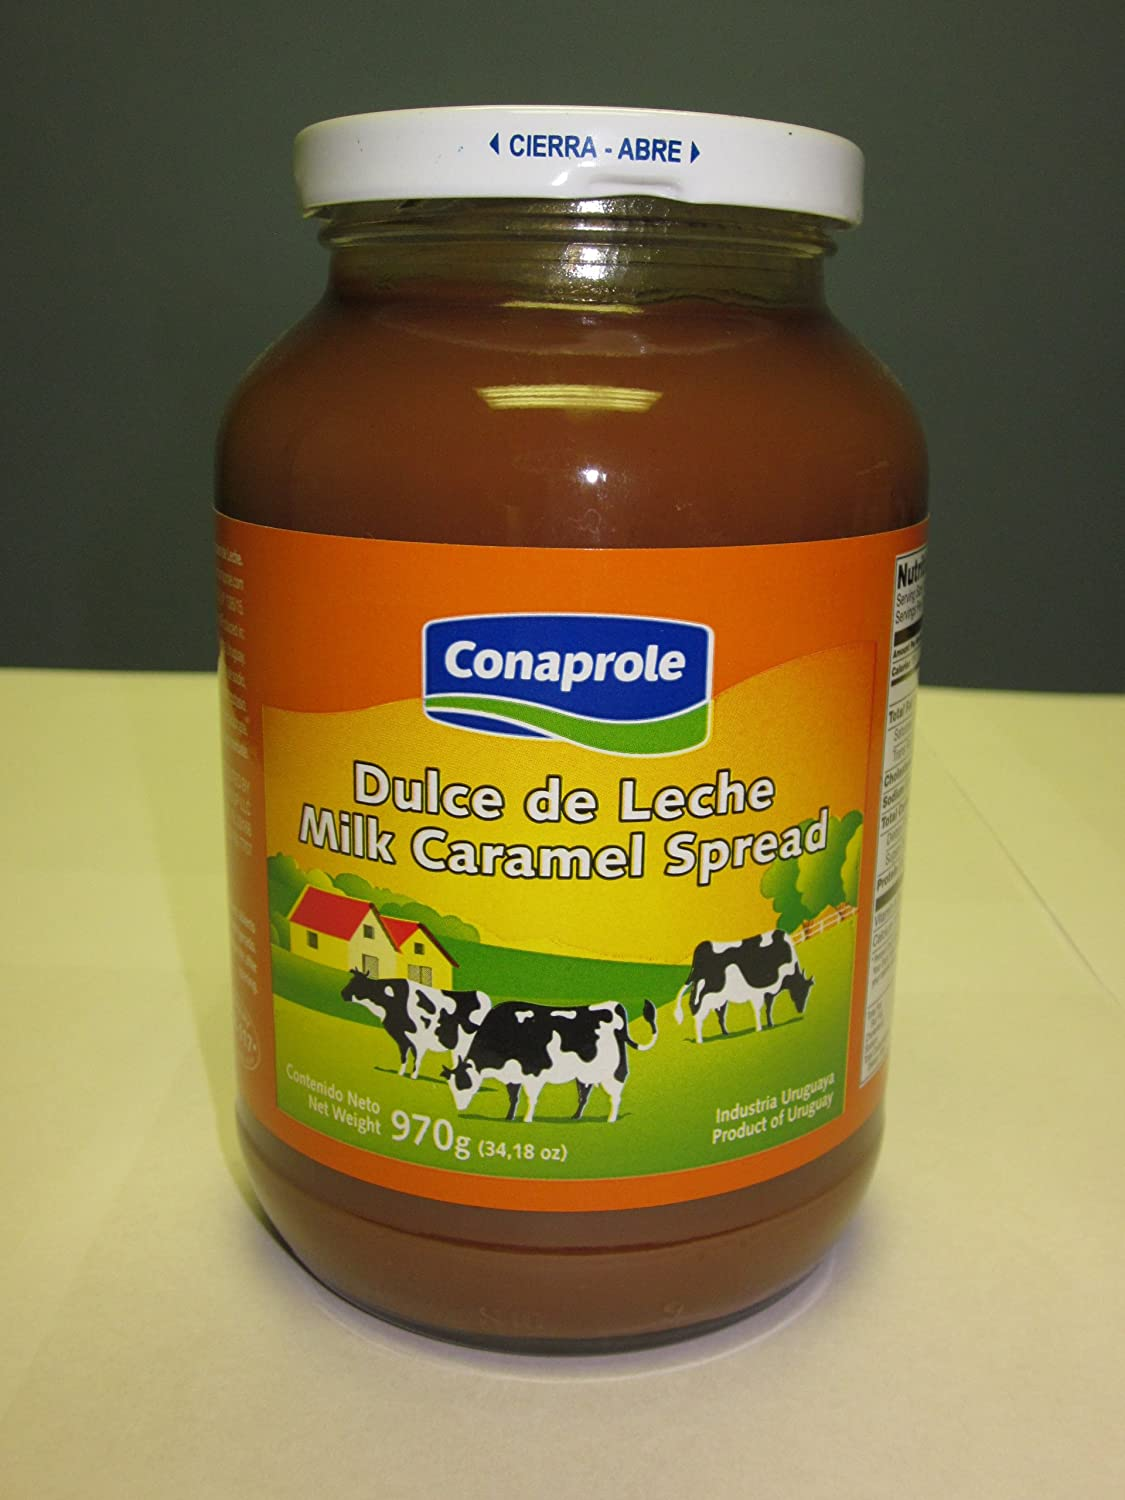 Amazon.com : DULCE DE LECHE CONAPROLE 970g (Set of 3) $28.50 : Dessert Toppings : Grocery & Gourmet Food